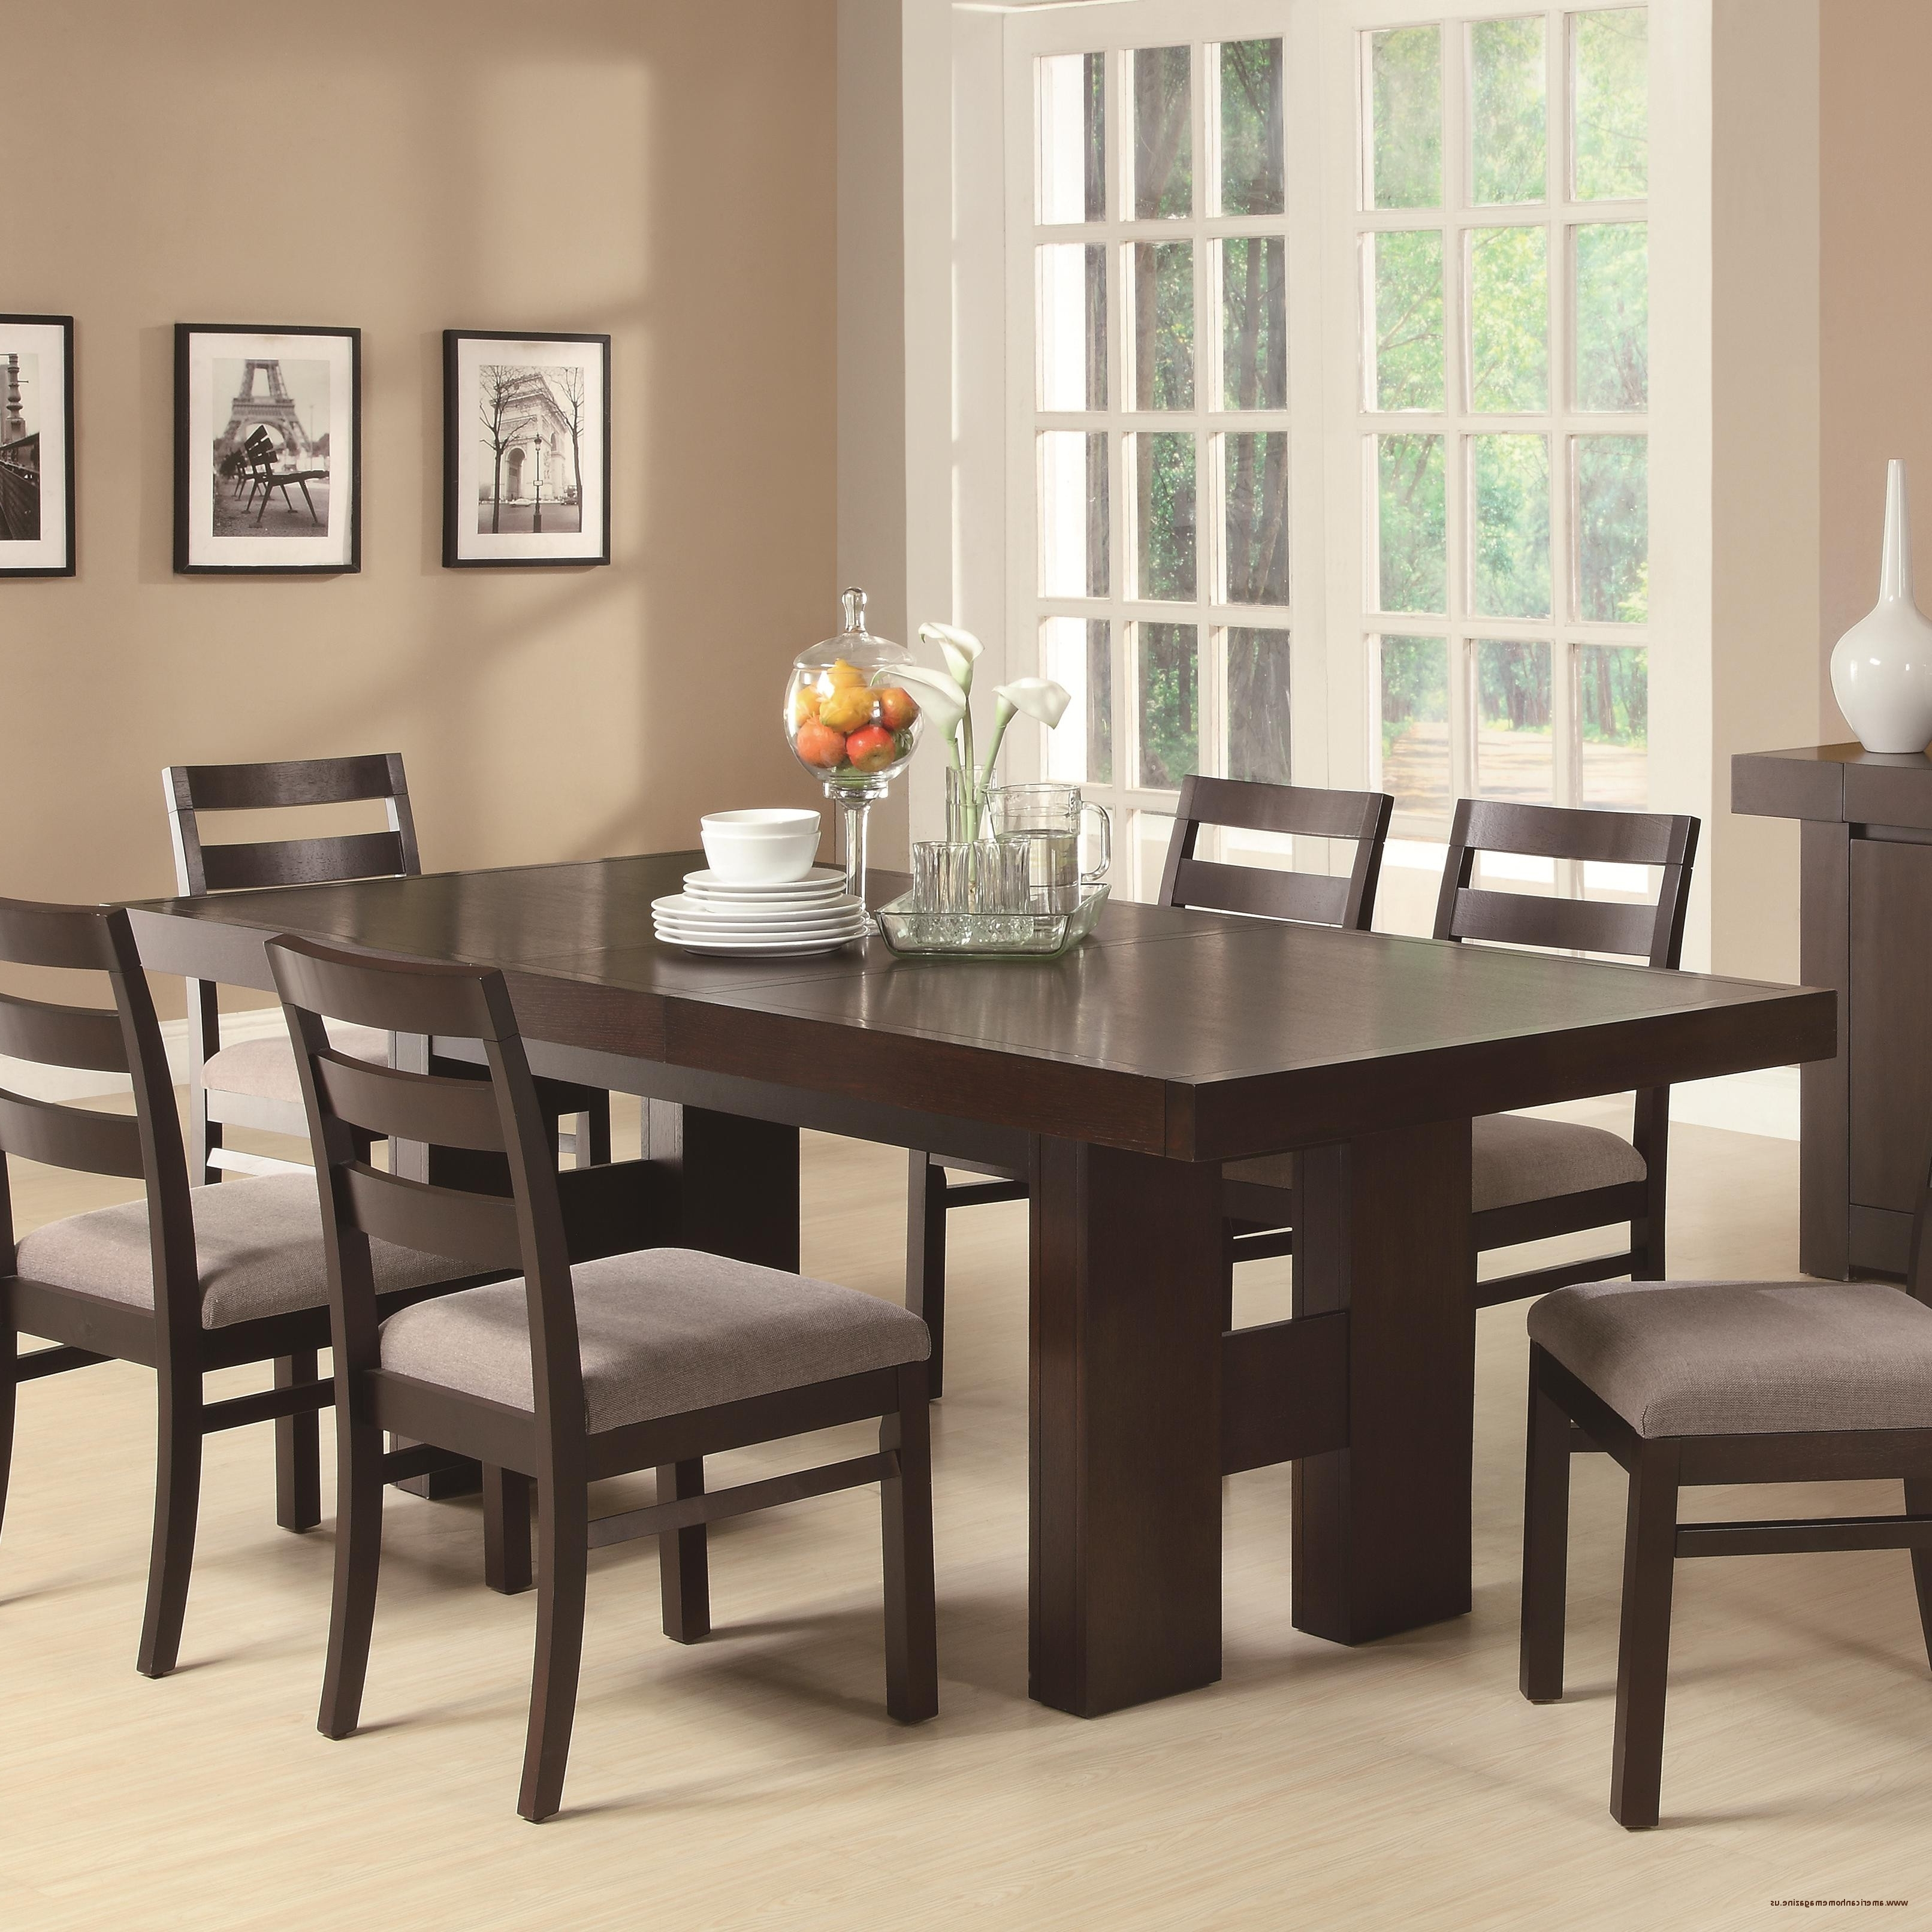 Ebay Dining Suites In 2018 Beautiful Used Dining Room Sets Ebay And 4 Dining Room Chairs Ebay (View 13 of 25)